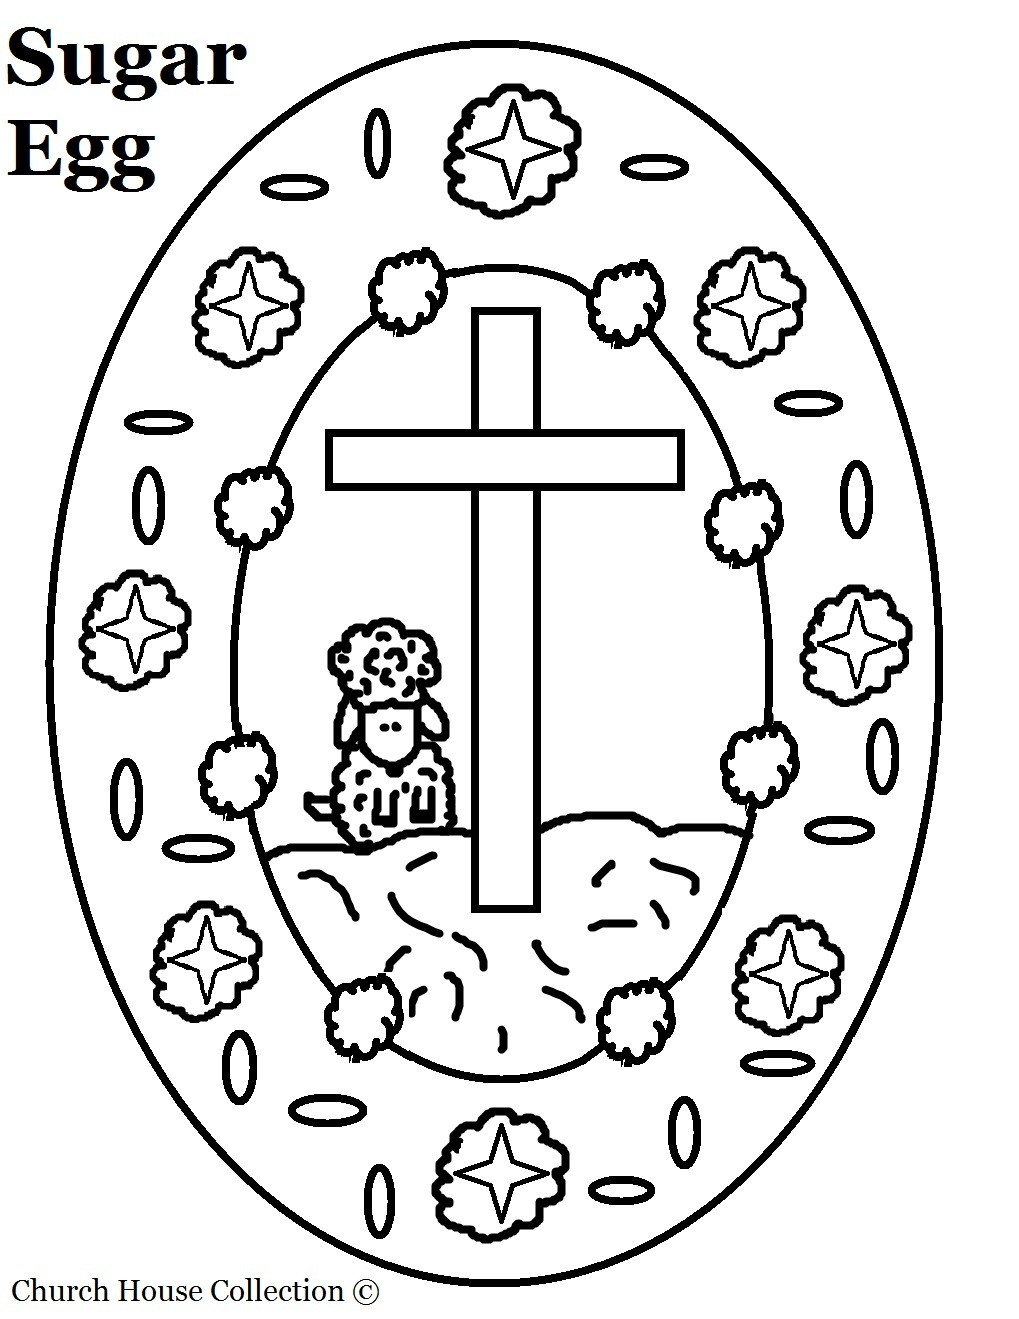 Sugar Egg With Cross And Sheep Coloring Page For Easter